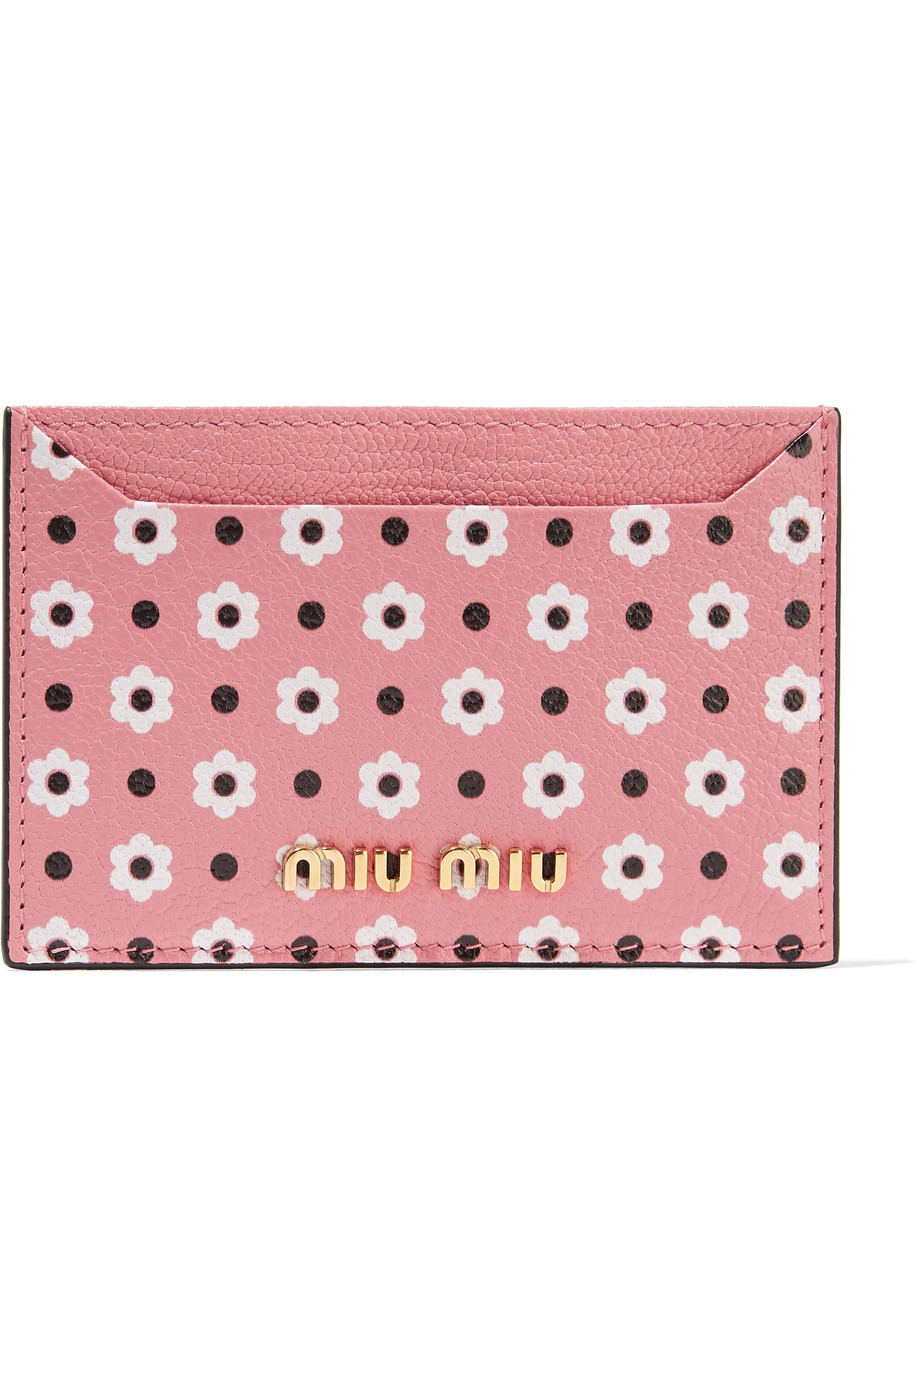 Miu Miu Printed Textured-Leather Cardholder - This floral cardholder is super adorable and there are a lot of other amazing cardholders in the Net-a-Porter sale (I also love this Prada one). Black Friday/Cyber Monday week is a great time to stock up on small leather goods - everyone needs and loves them (except any of your vegan friends) and they're always a beautiful but affordable luxury item that you can gift to those closest to you.